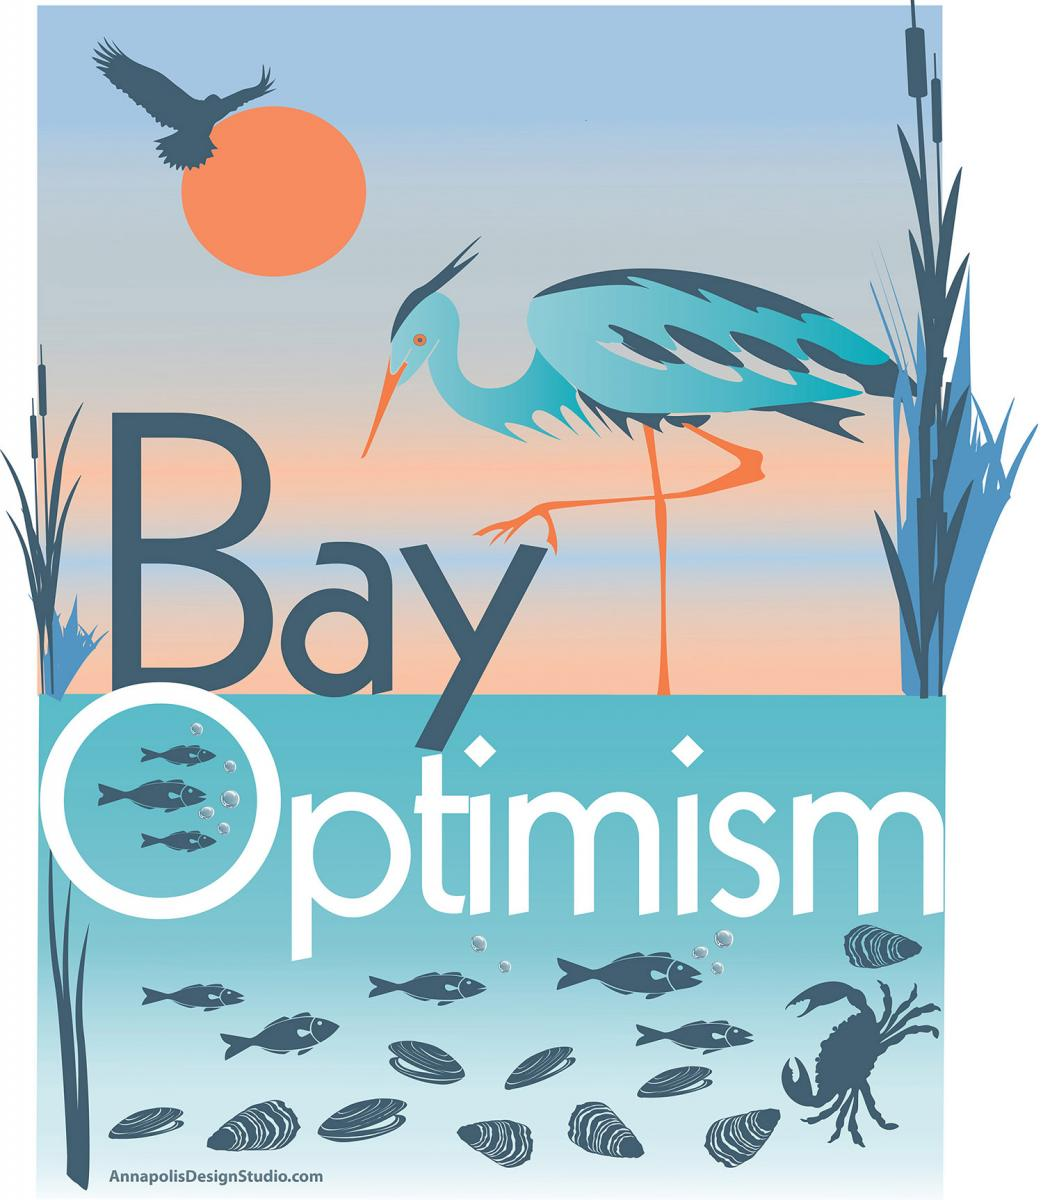 Bay Optimism logo